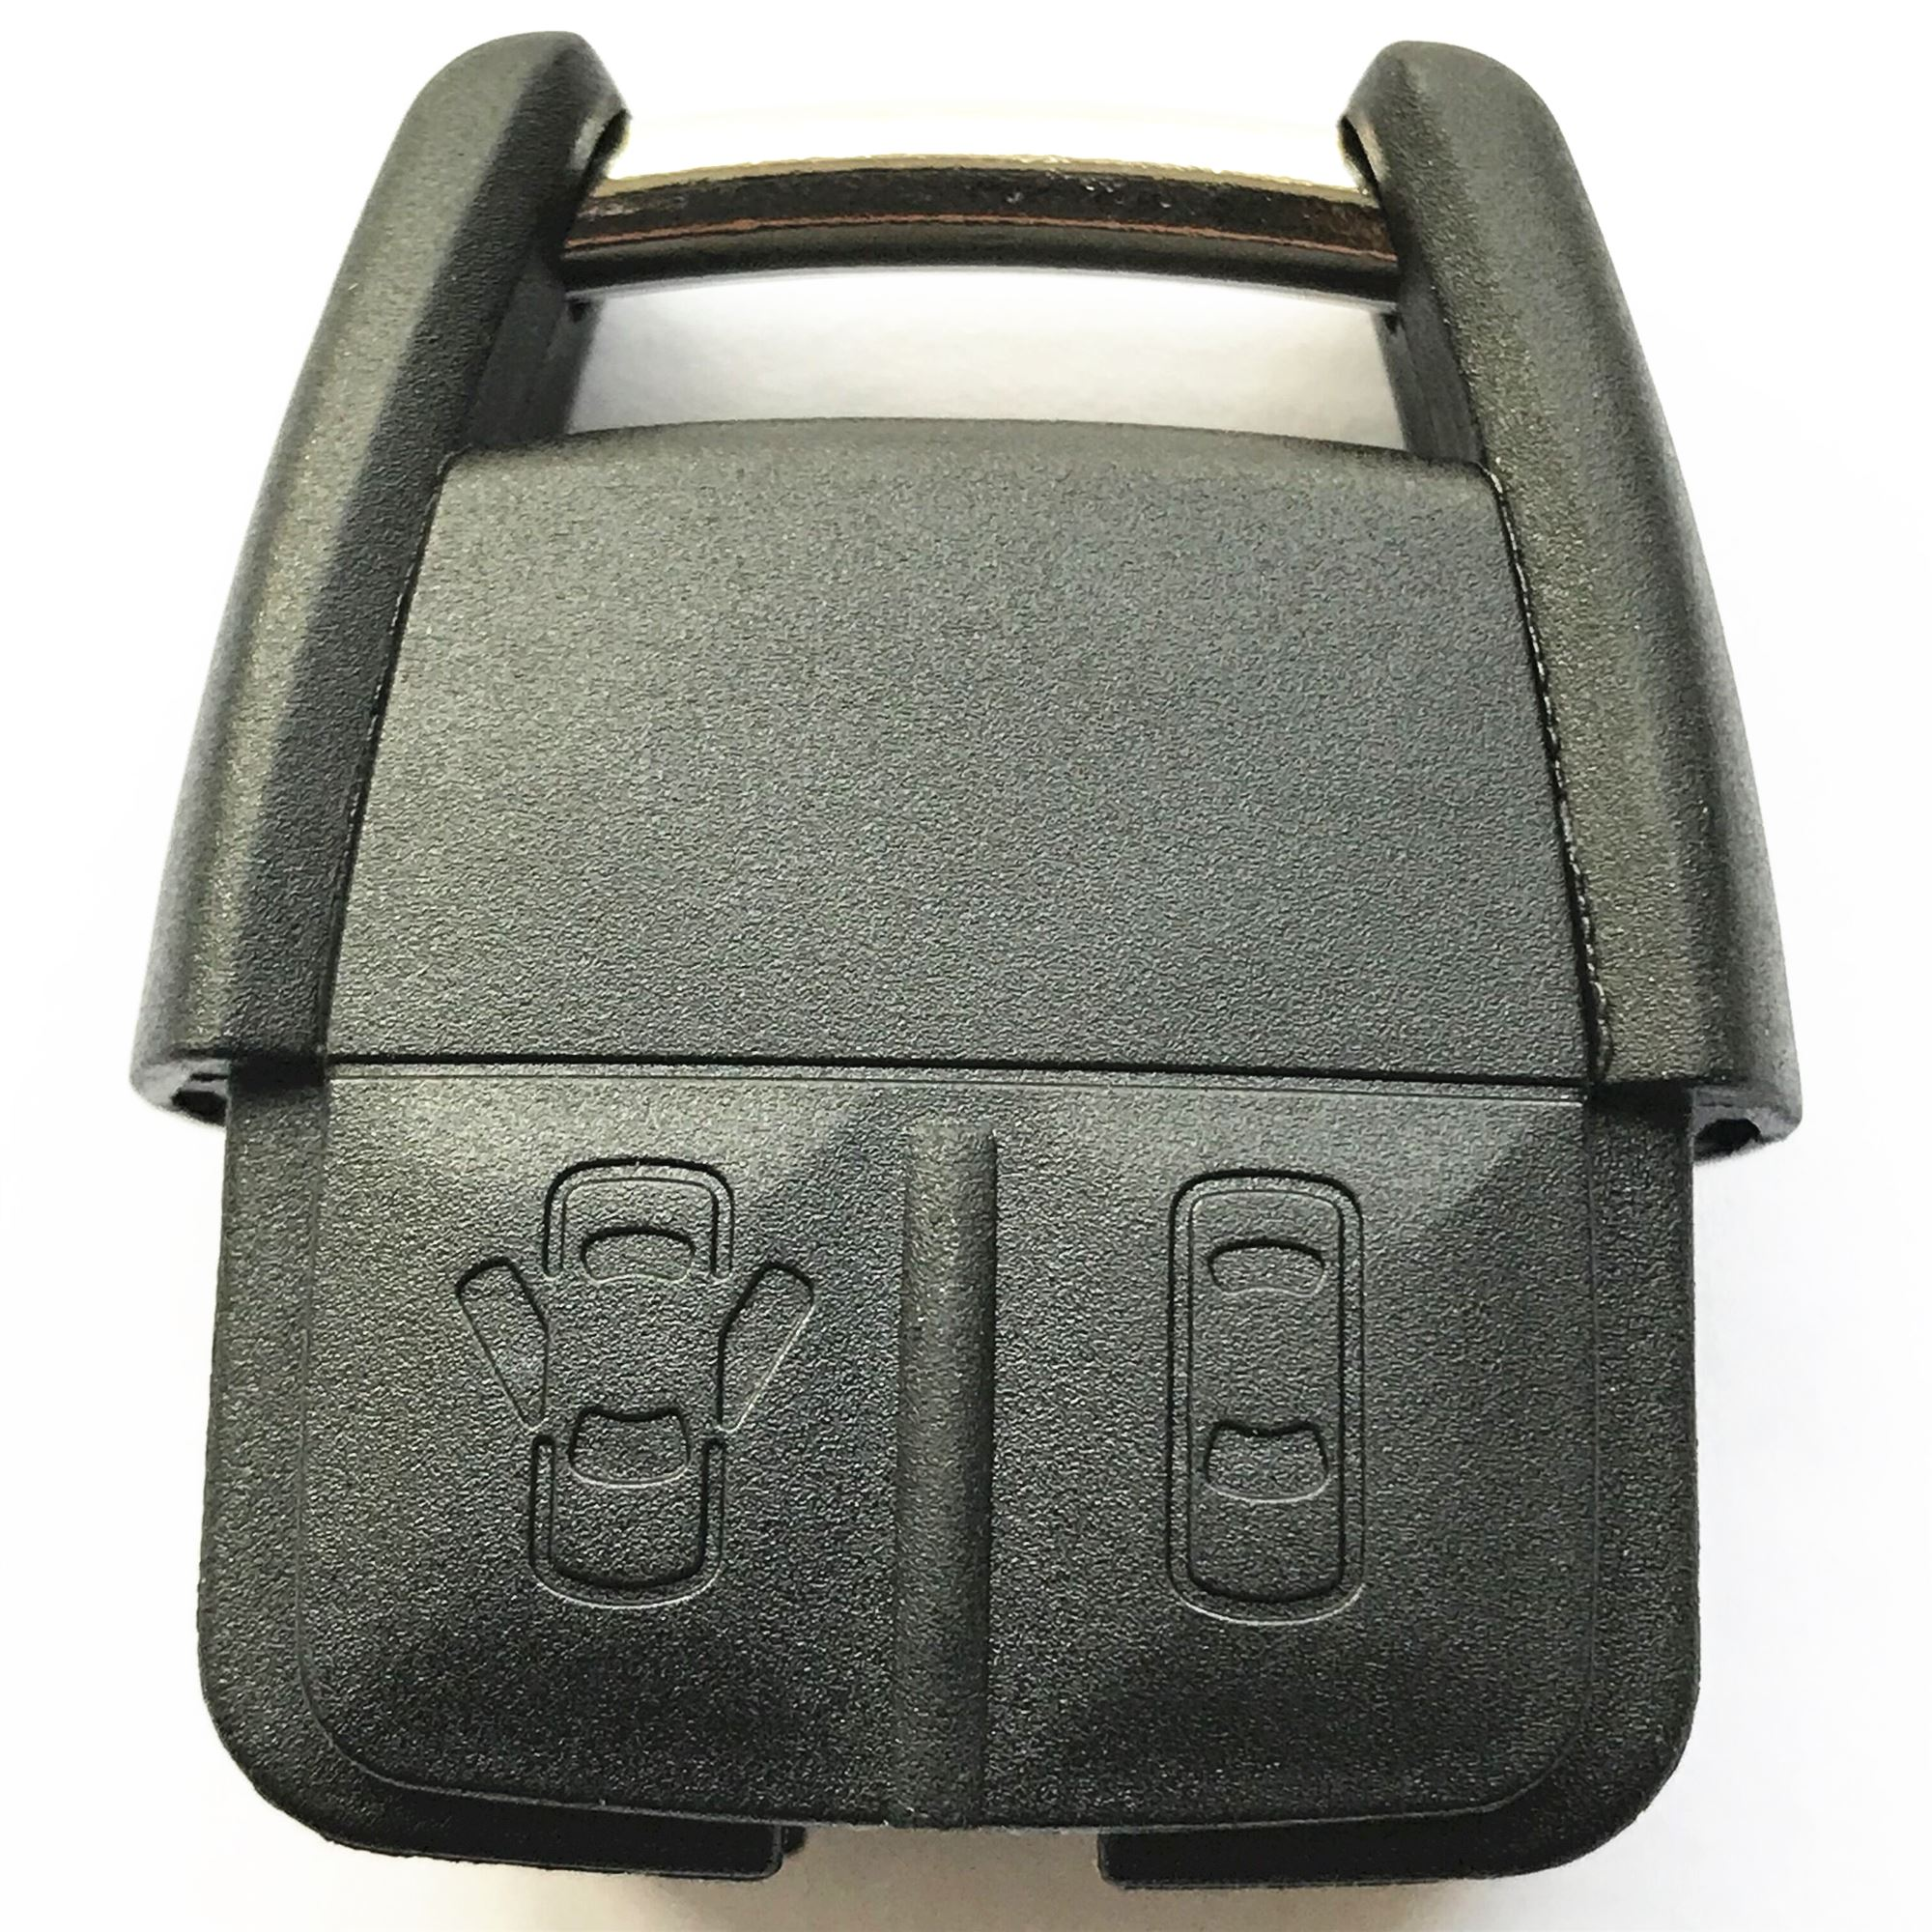 2 Buttons 434 MHz Remote Control Key For Opel